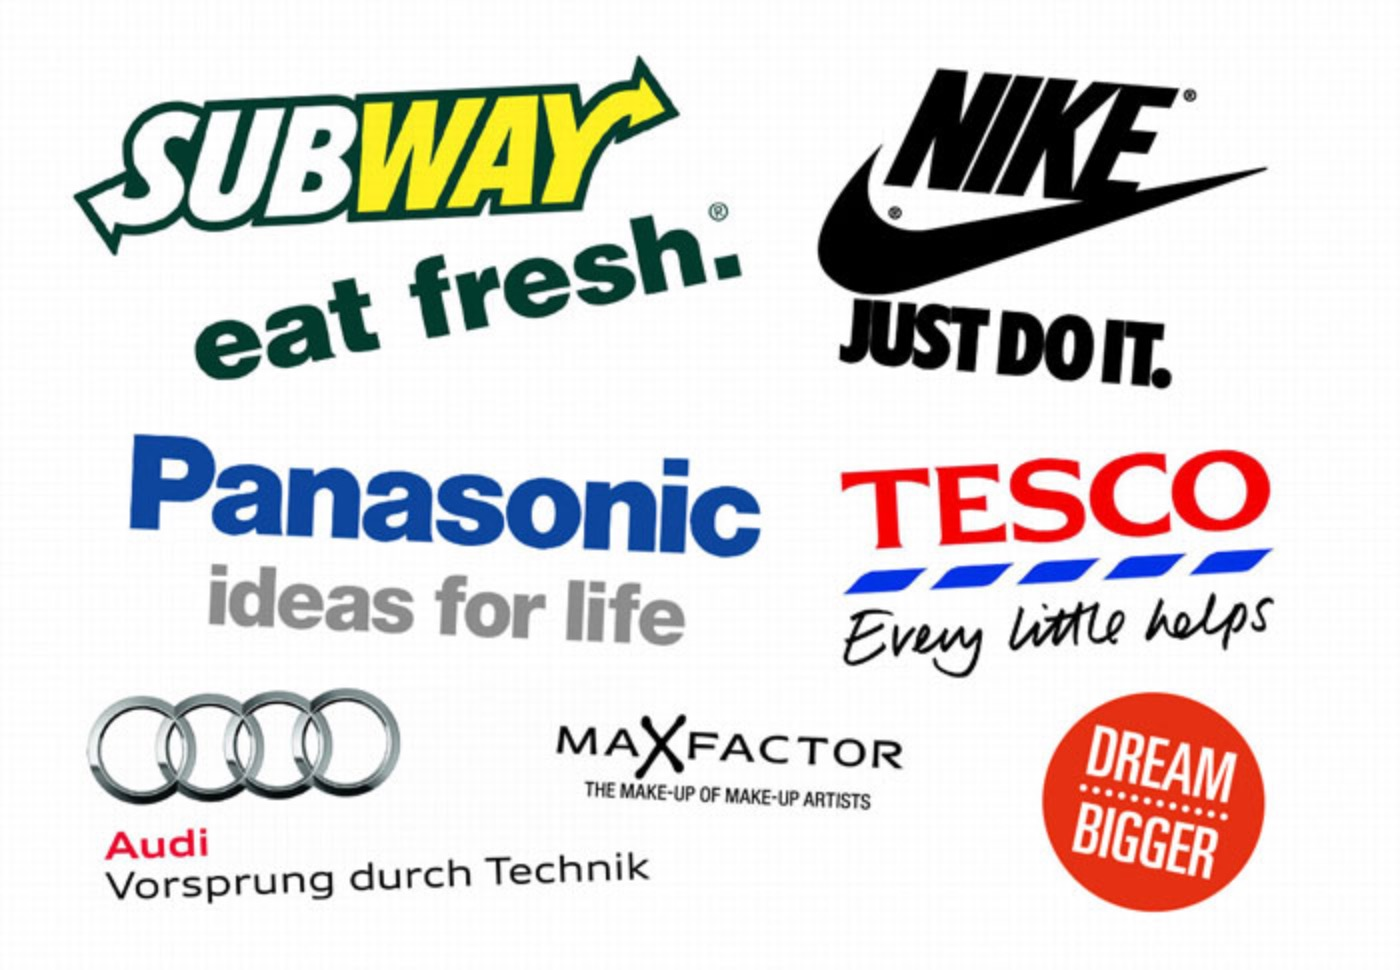 Famous Advertising Slogans - Quick Questions